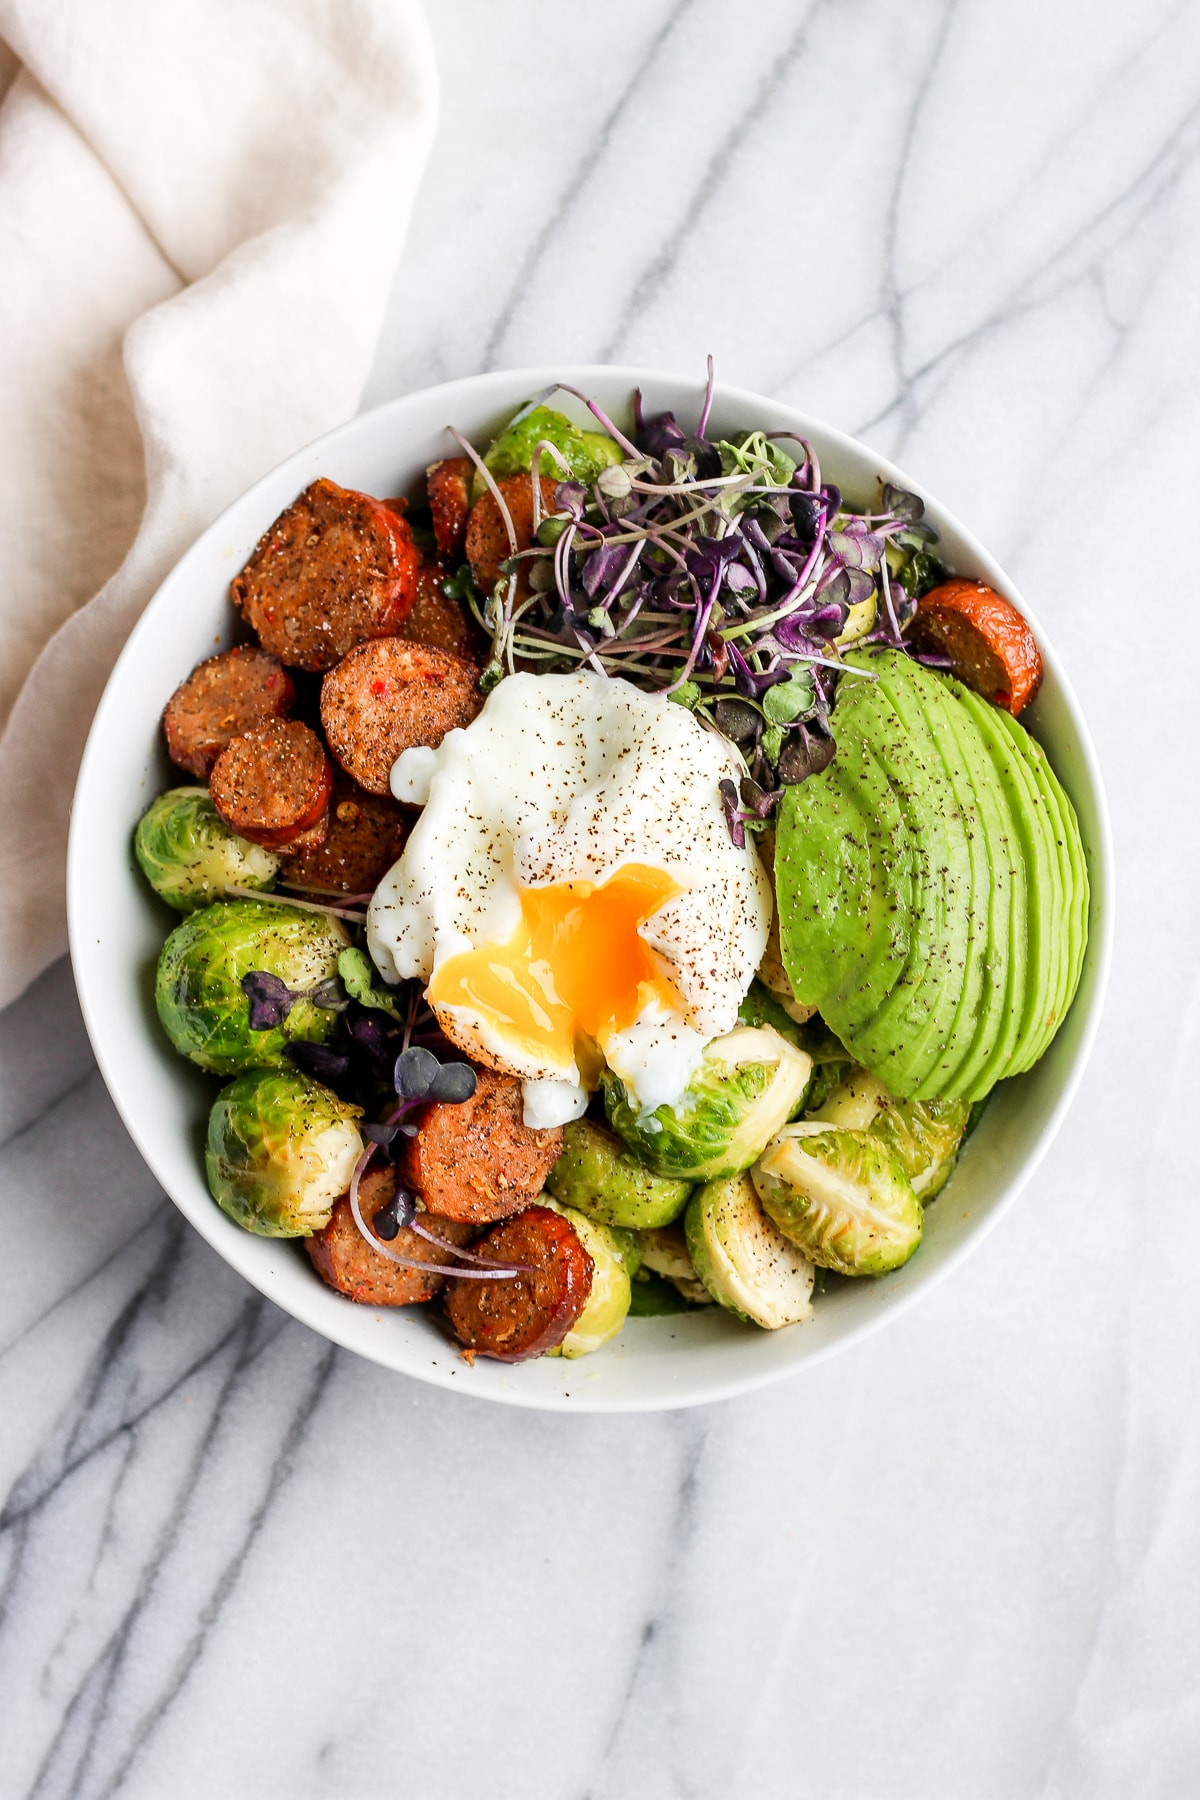 20 Minute Chorizo and Brussel Sprout Weeknight Dinner Bowl - a quick and easy weeknight dinner that is beyond easy! #weeknight #whole30 #paleo